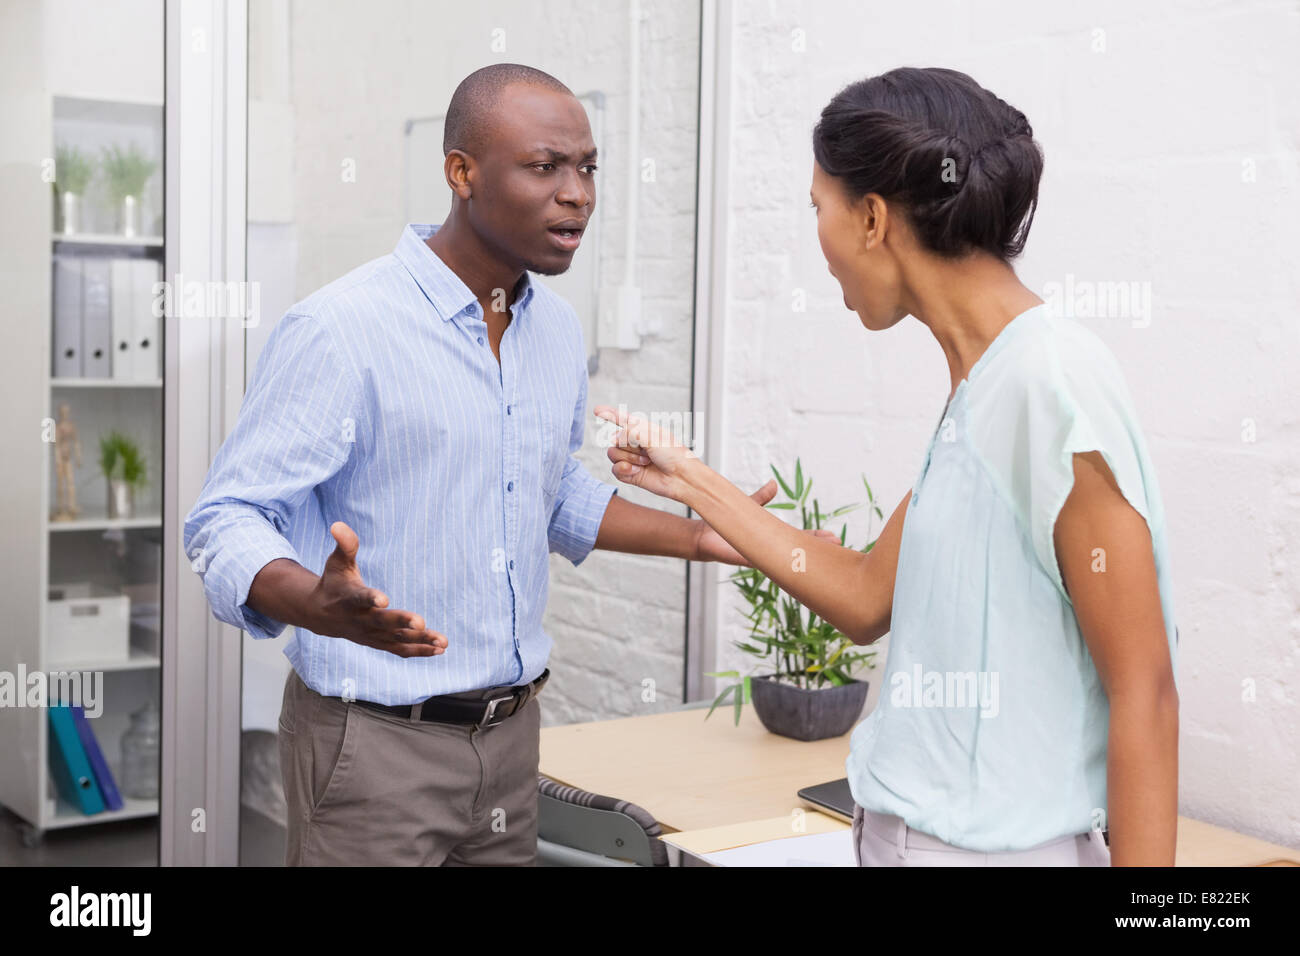 Casual business partners having an argument - Stock Image